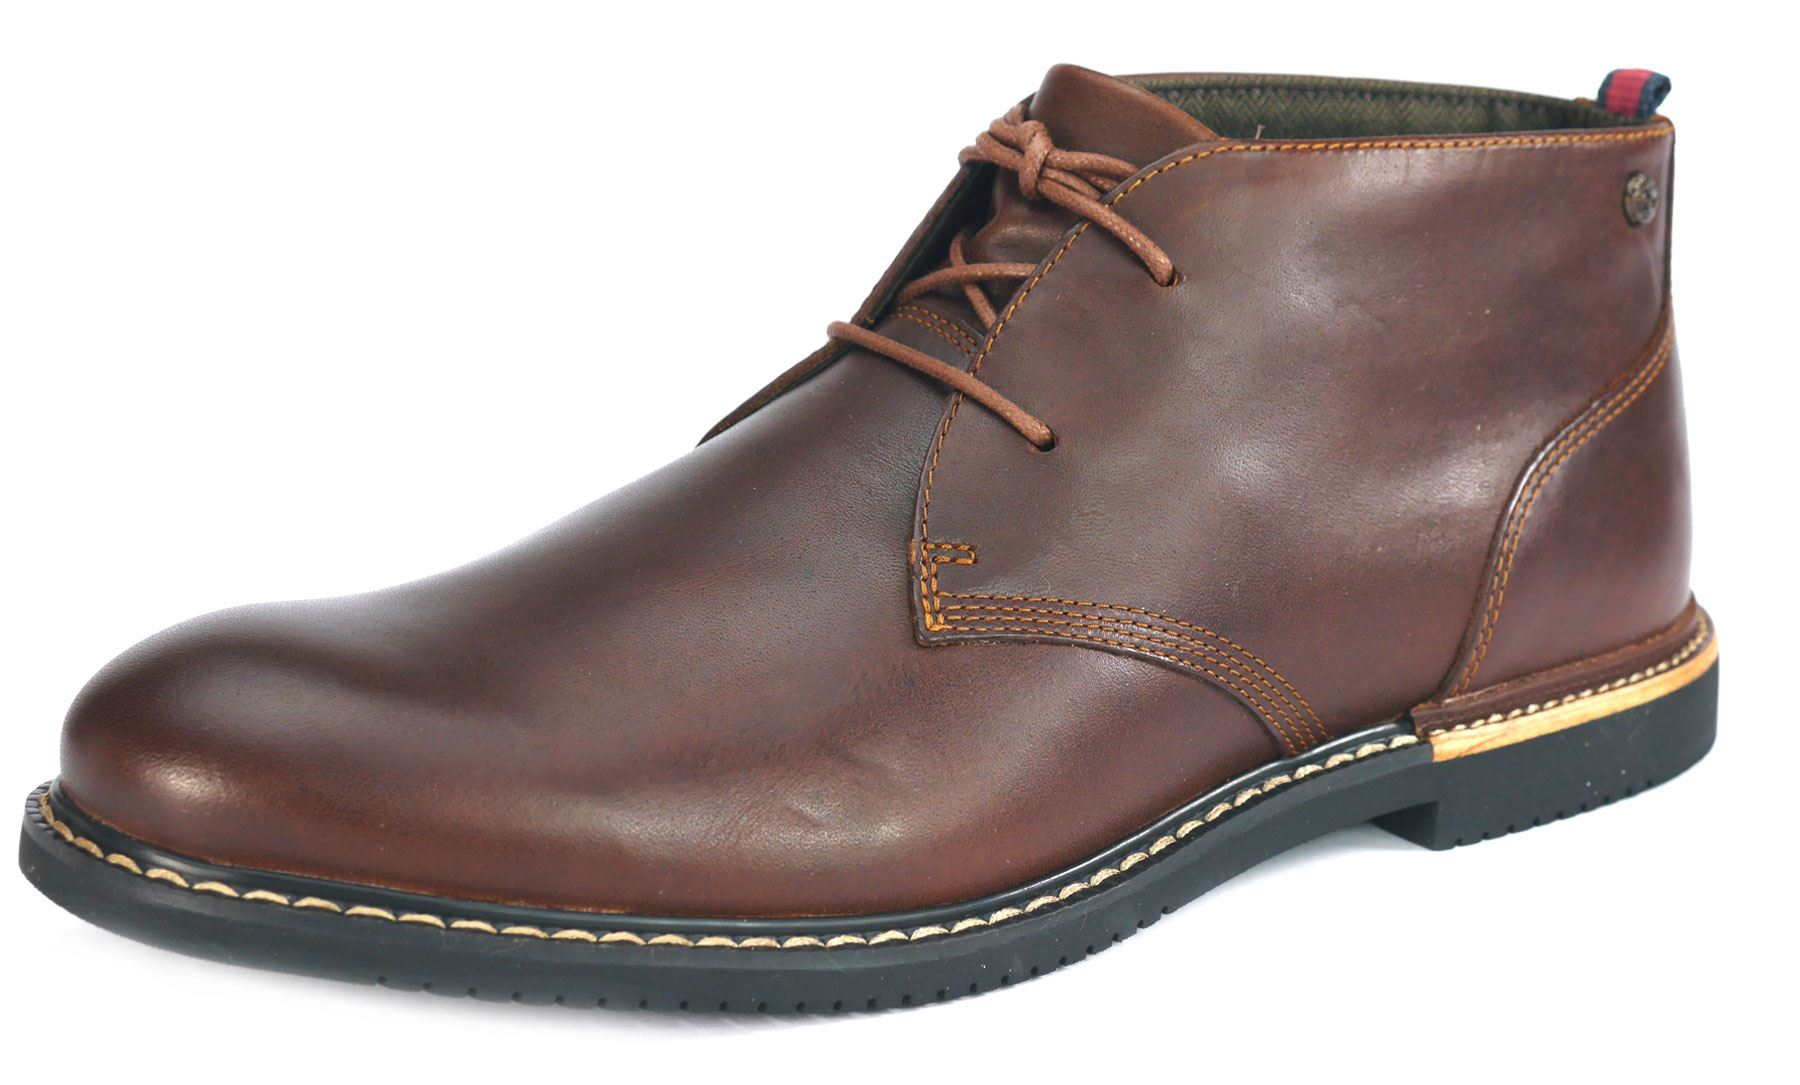 timberland brook 5513a mens brown leather lace up chukka desert boots ebay. Black Bedroom Furniture Sets. Home Design Ideas